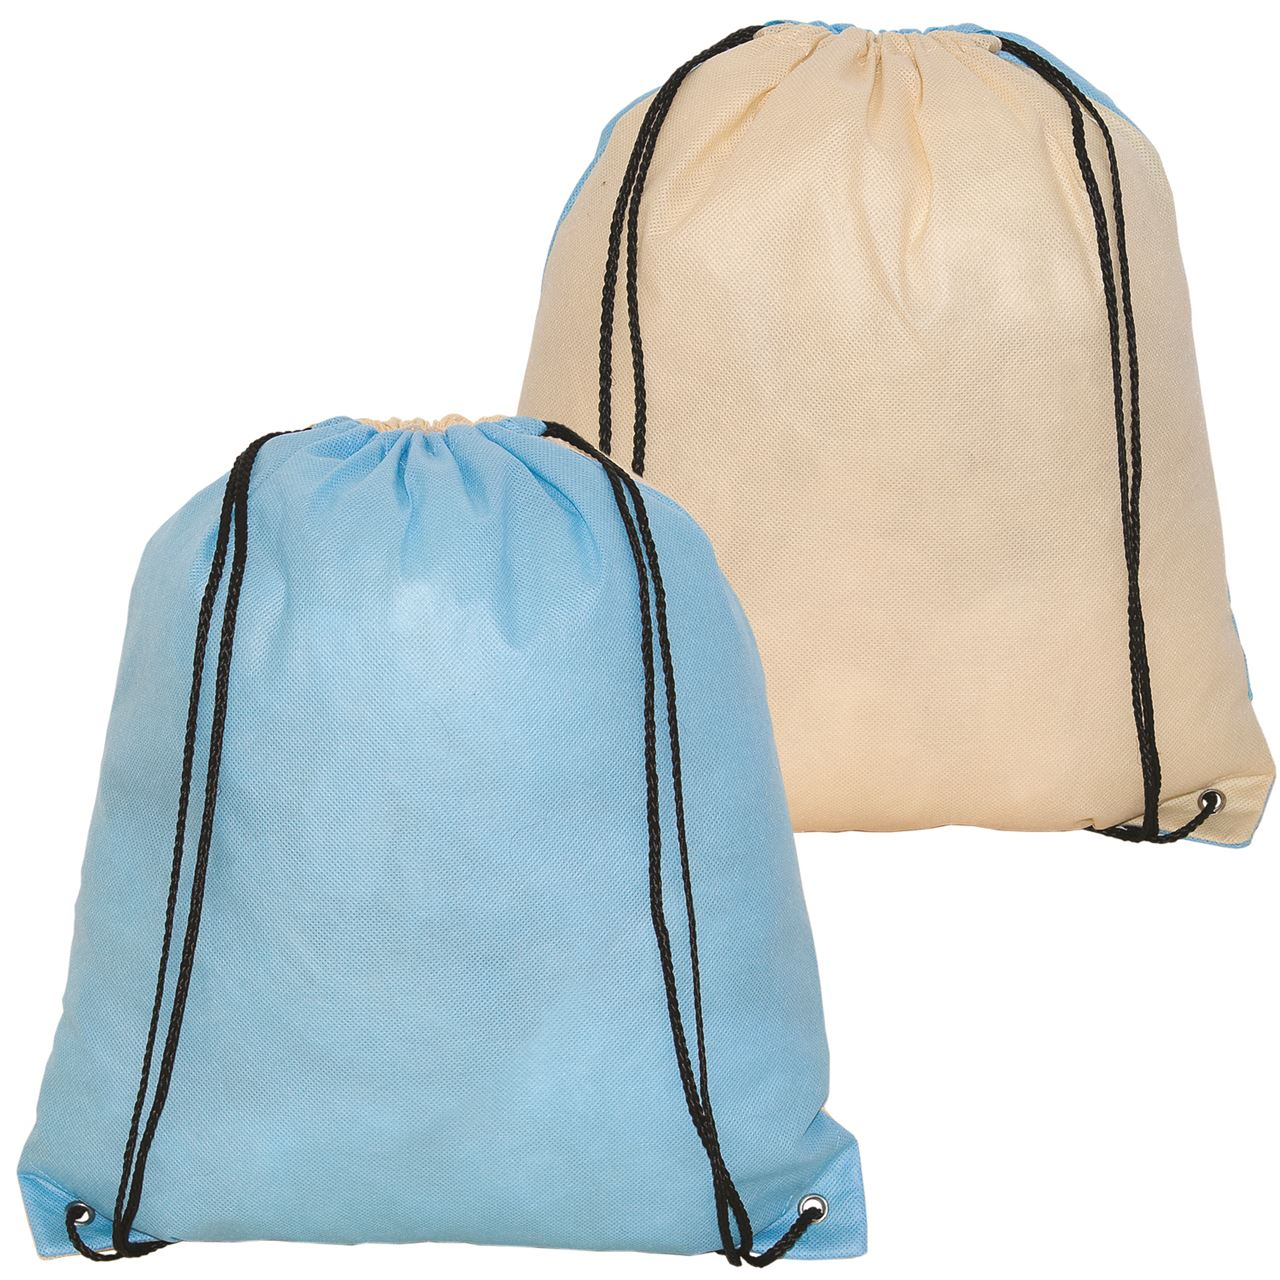 Picture of DEBCO Non Woven Drawstring Knapsack